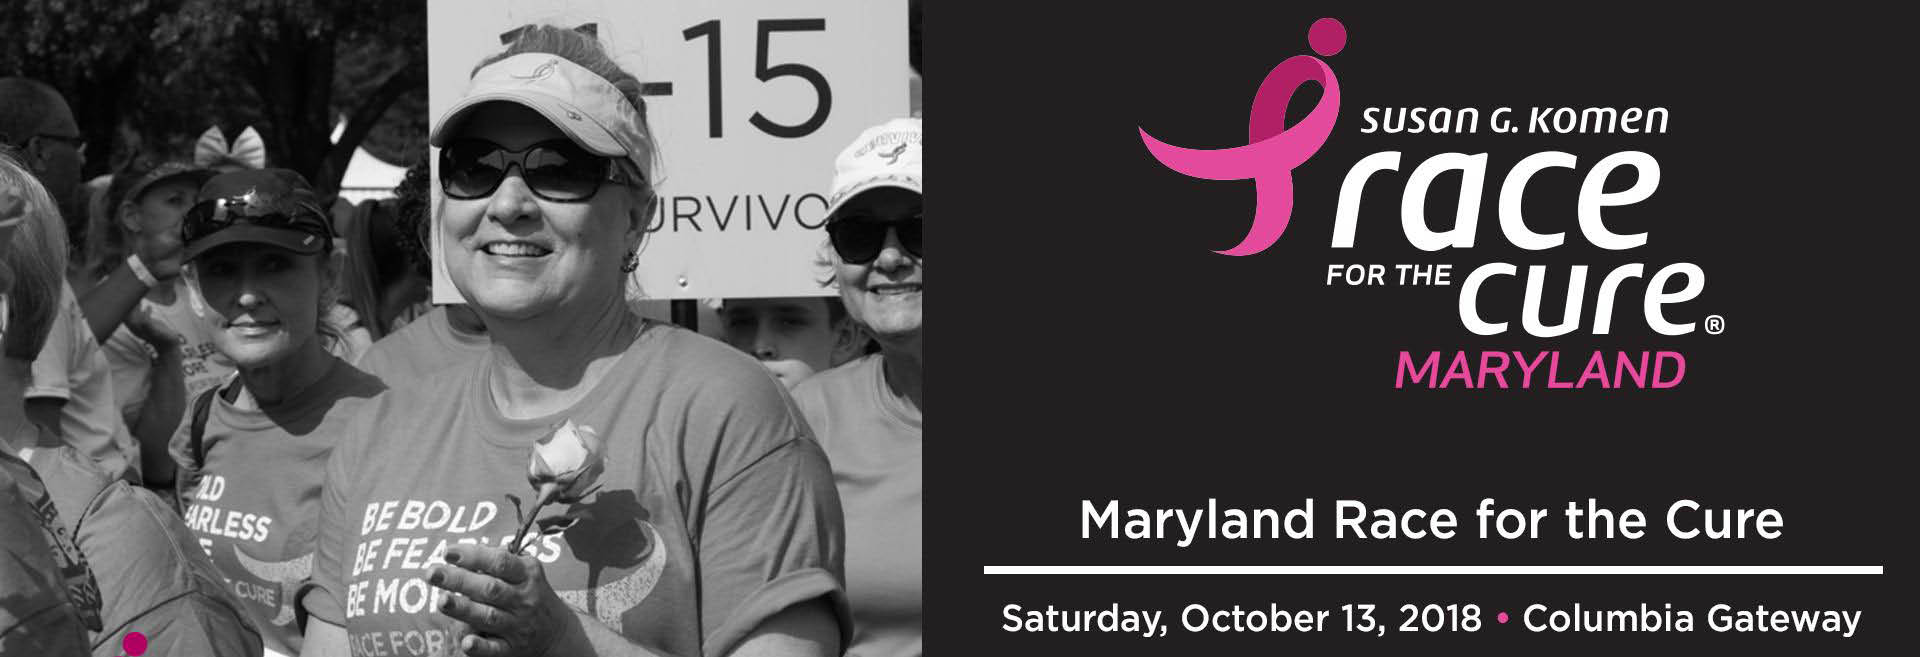 Susan G. Komen Race For the Cure Maryland